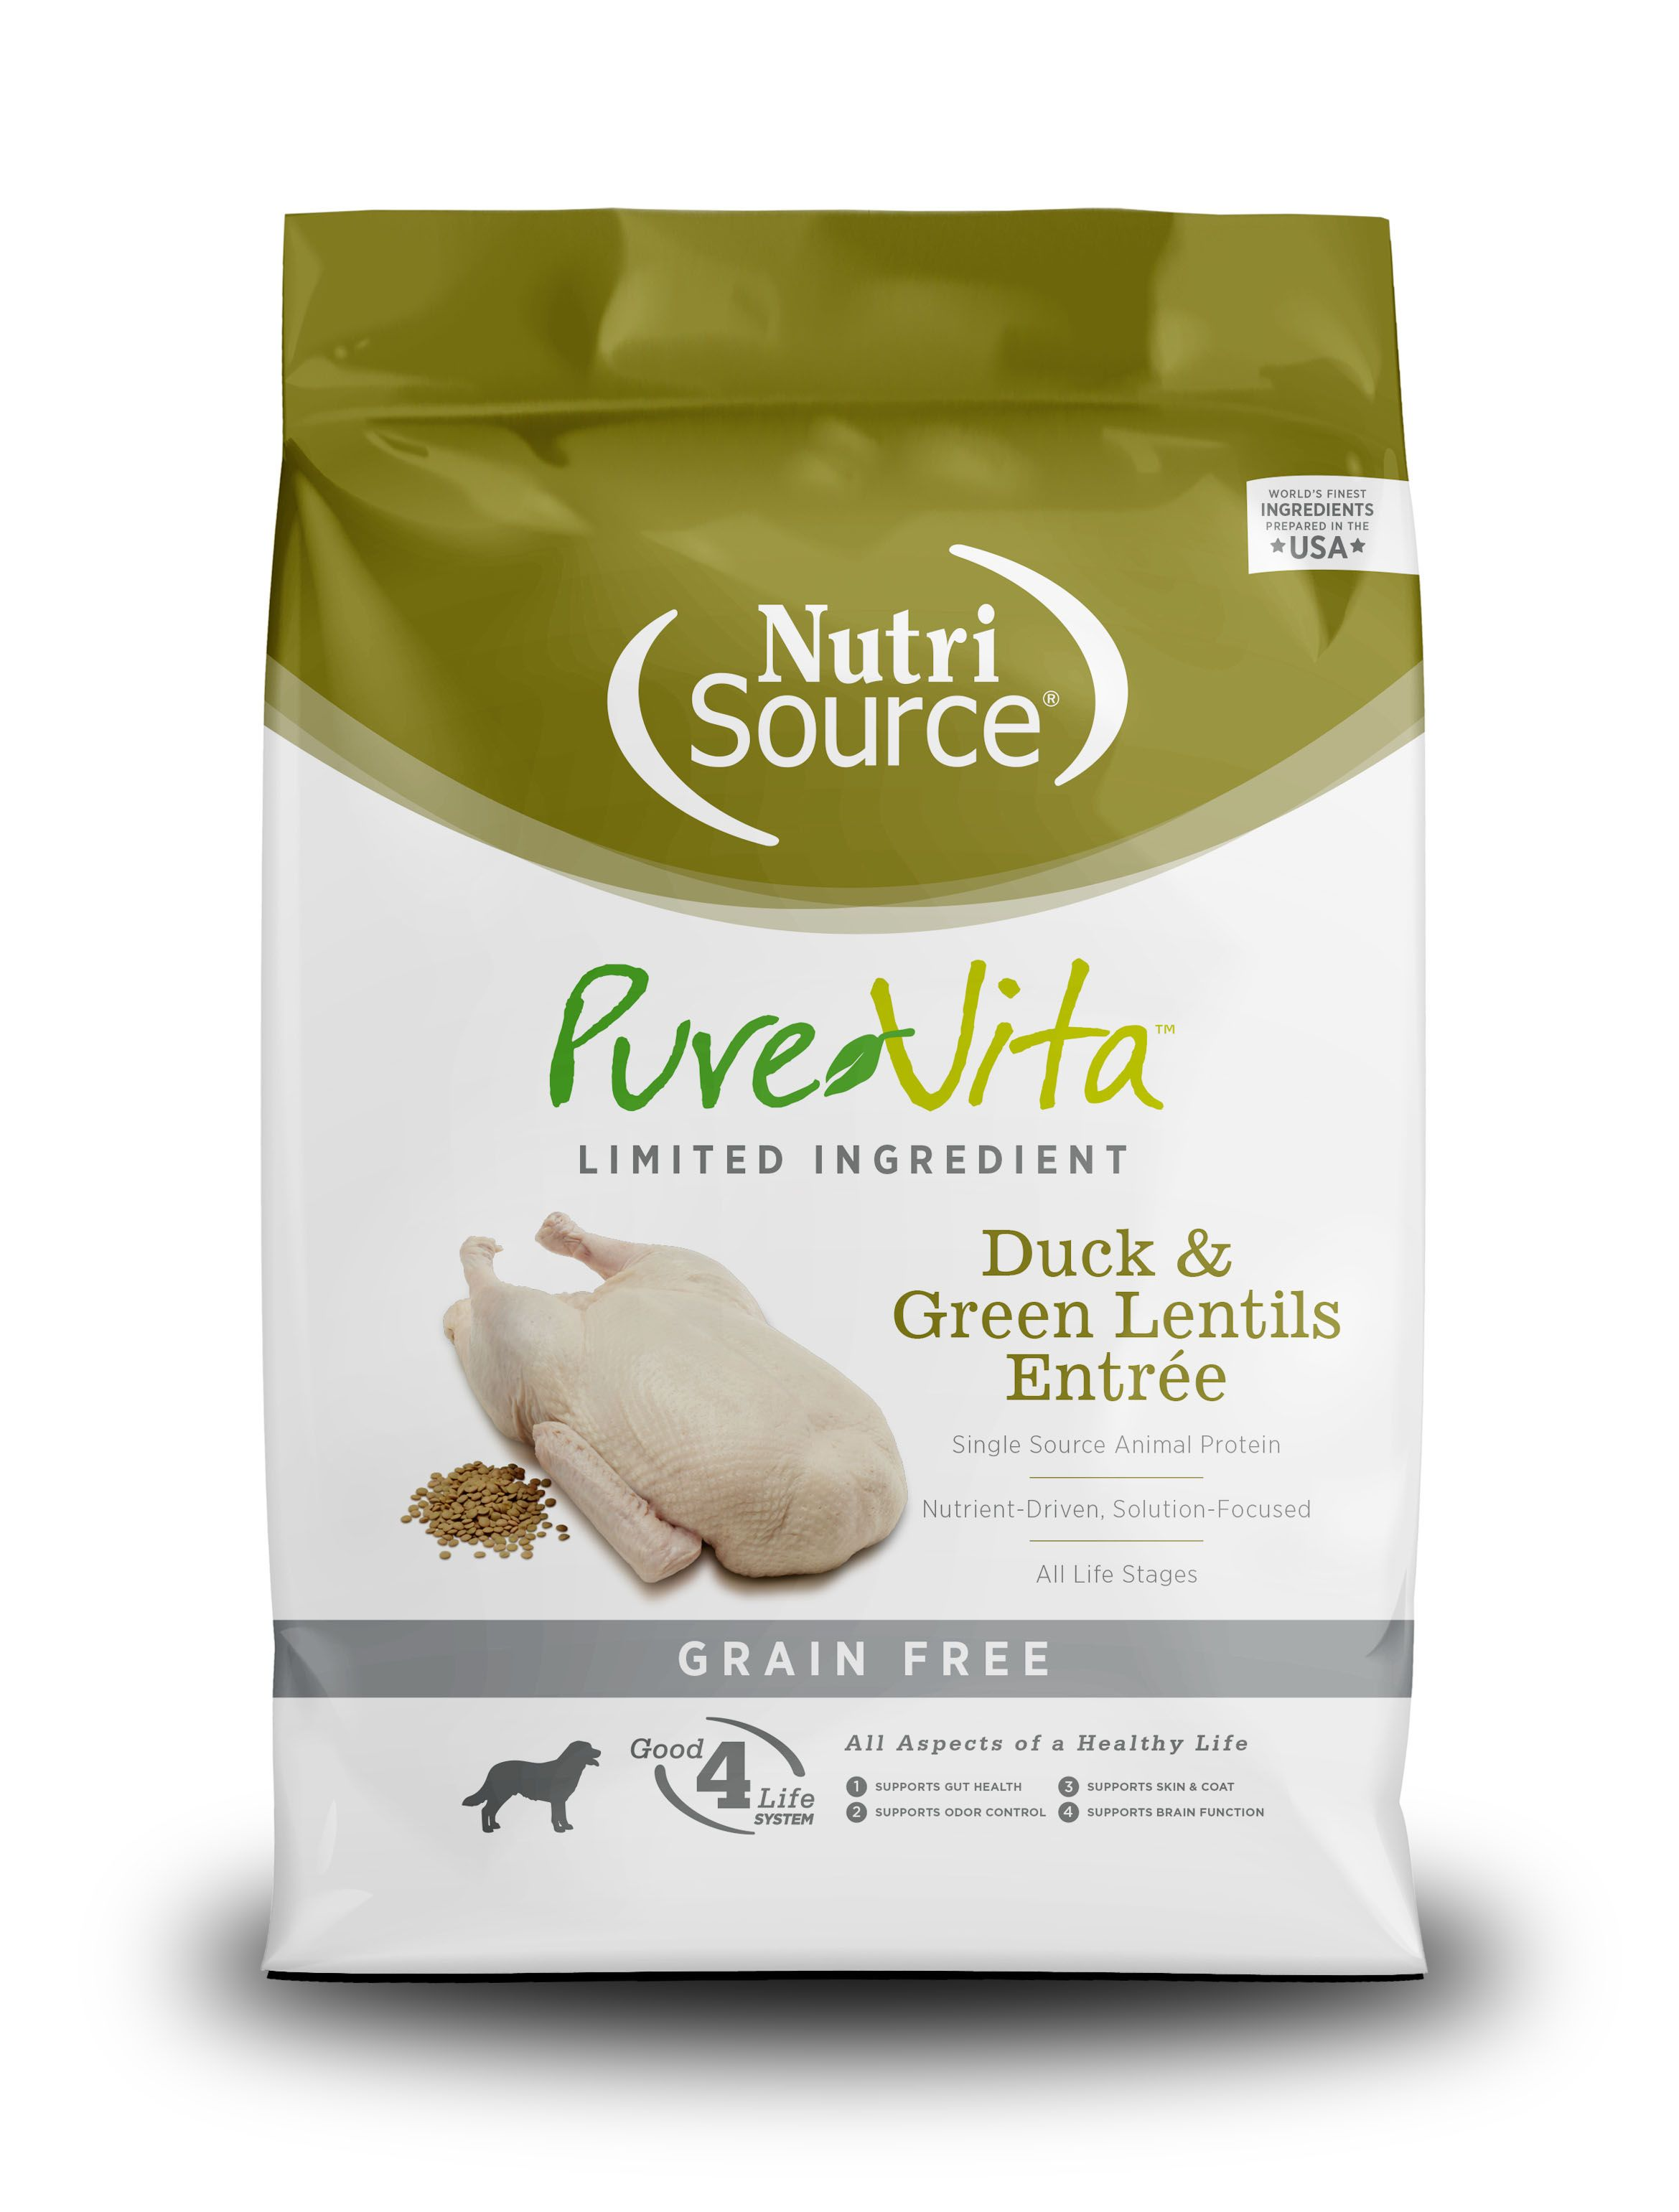 PureVita Grain Free Duck & Green Lentils Recipe Dry Dog Food Image